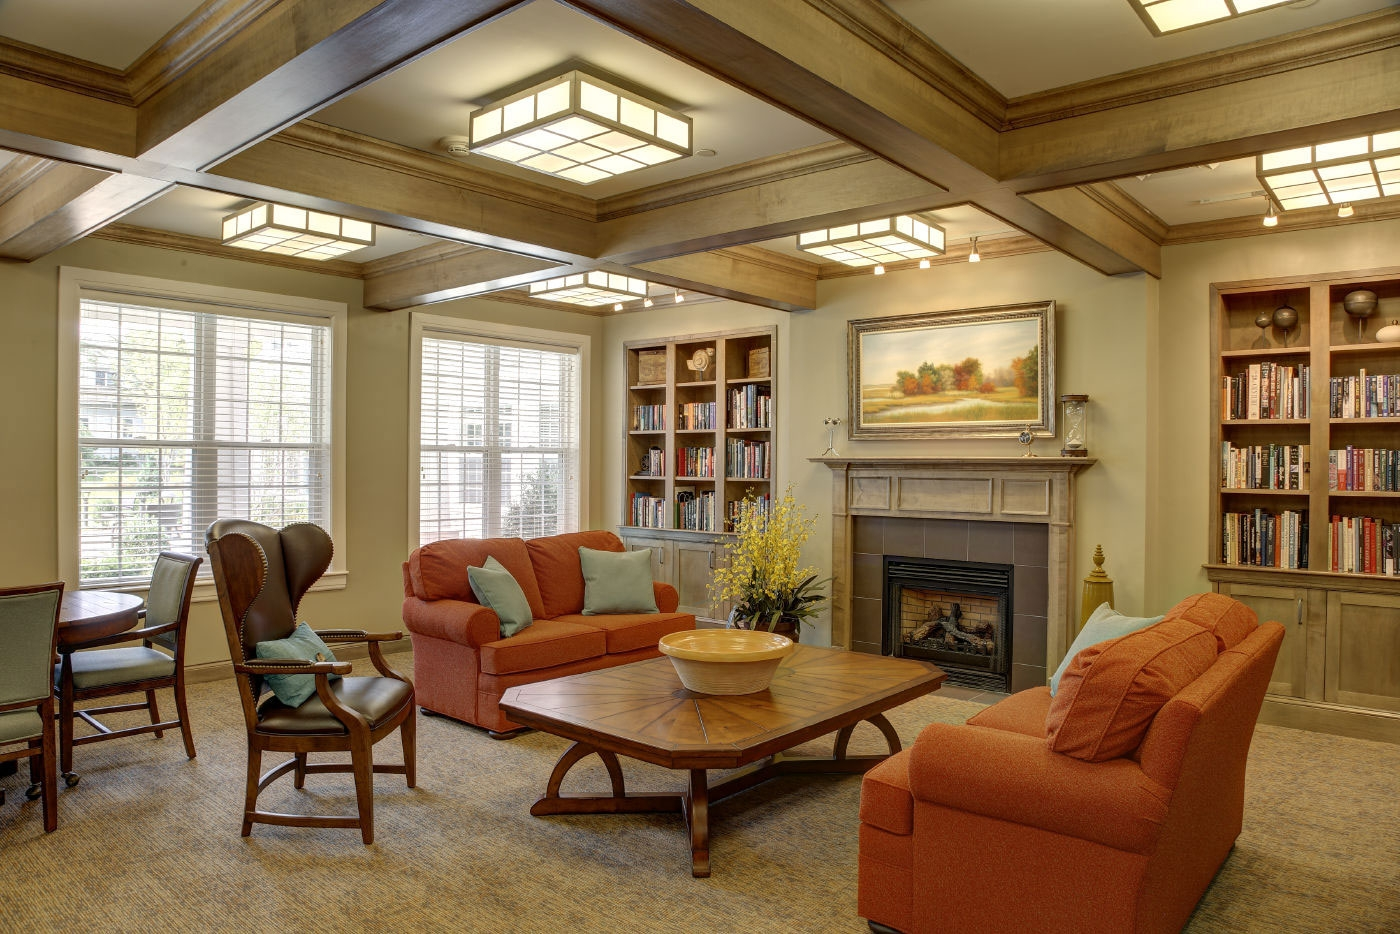 This showcases WDC's interior design skills for creating serene reading areas for senior communities